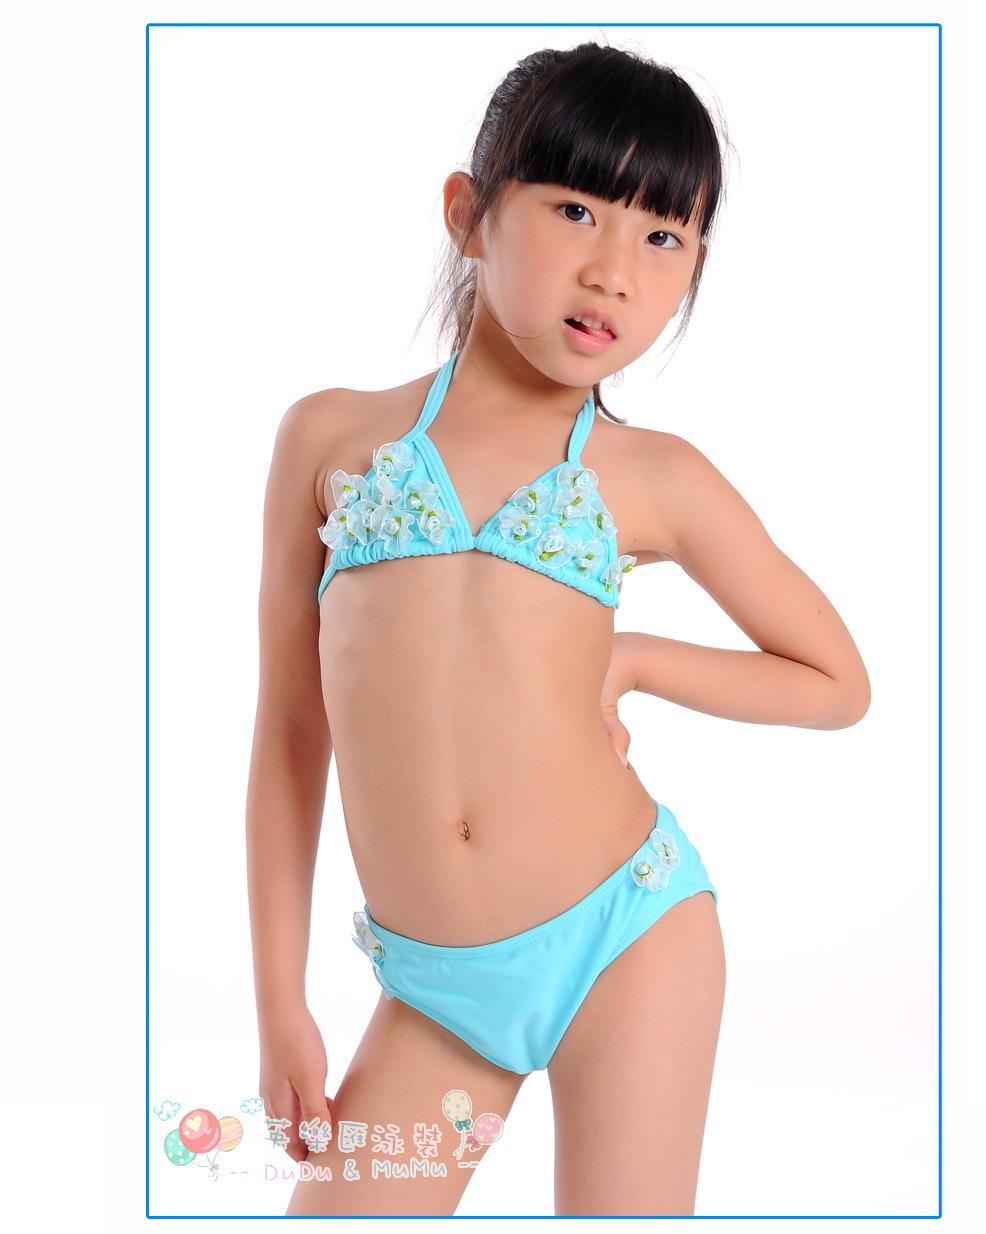 child bikini model images - usseek.com